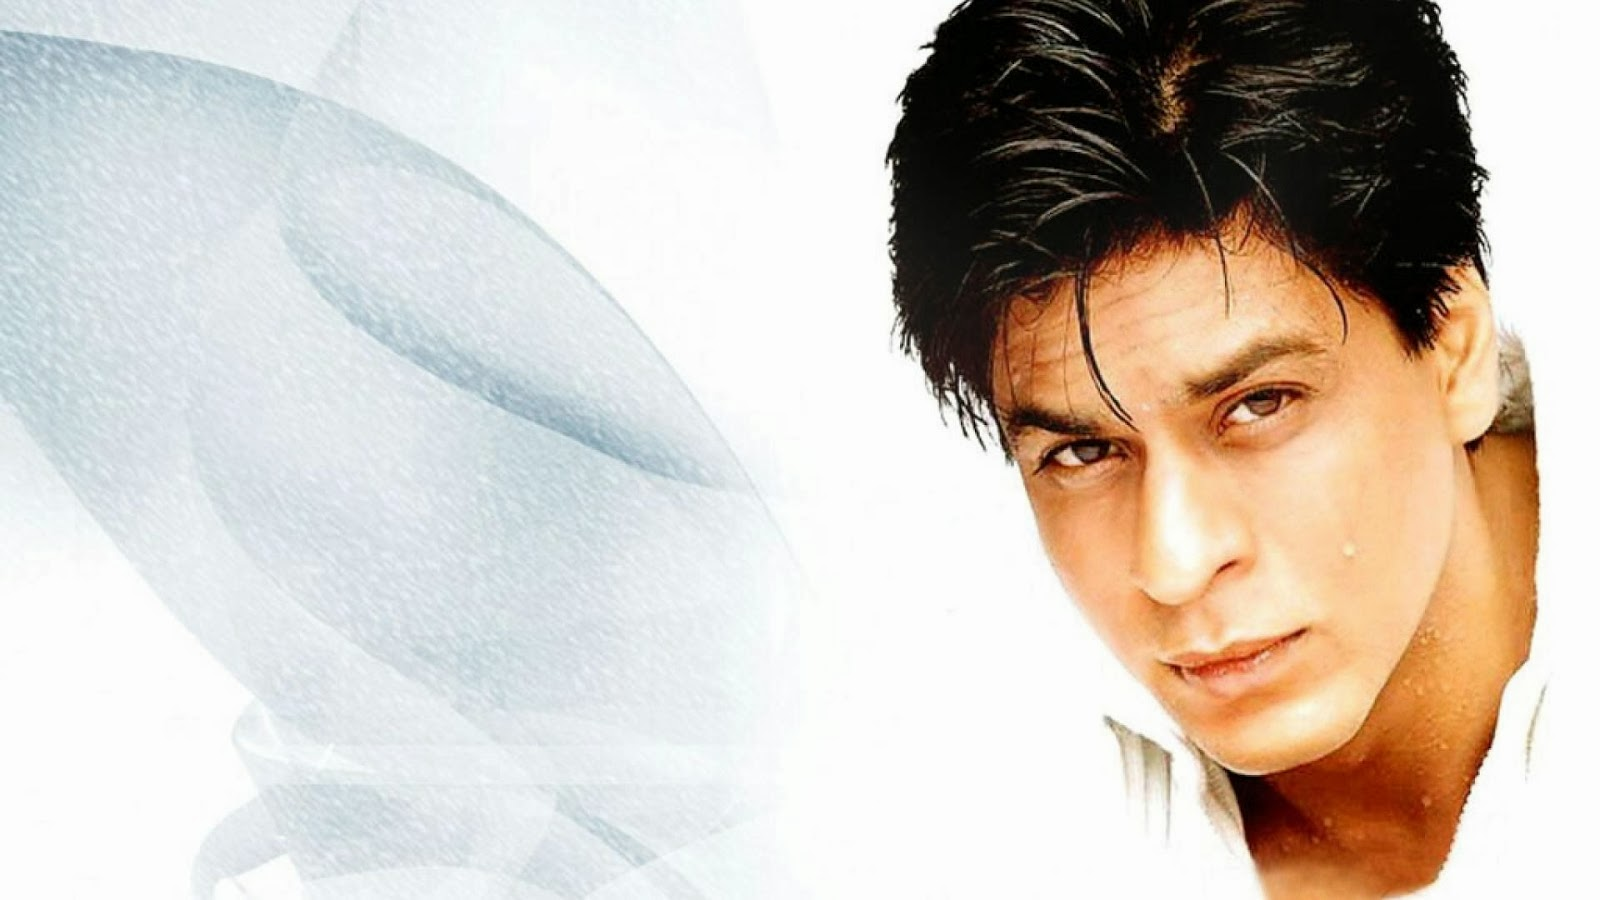 Wallpaper Shahrukh Khan Free Download Deloiz Wallpaper